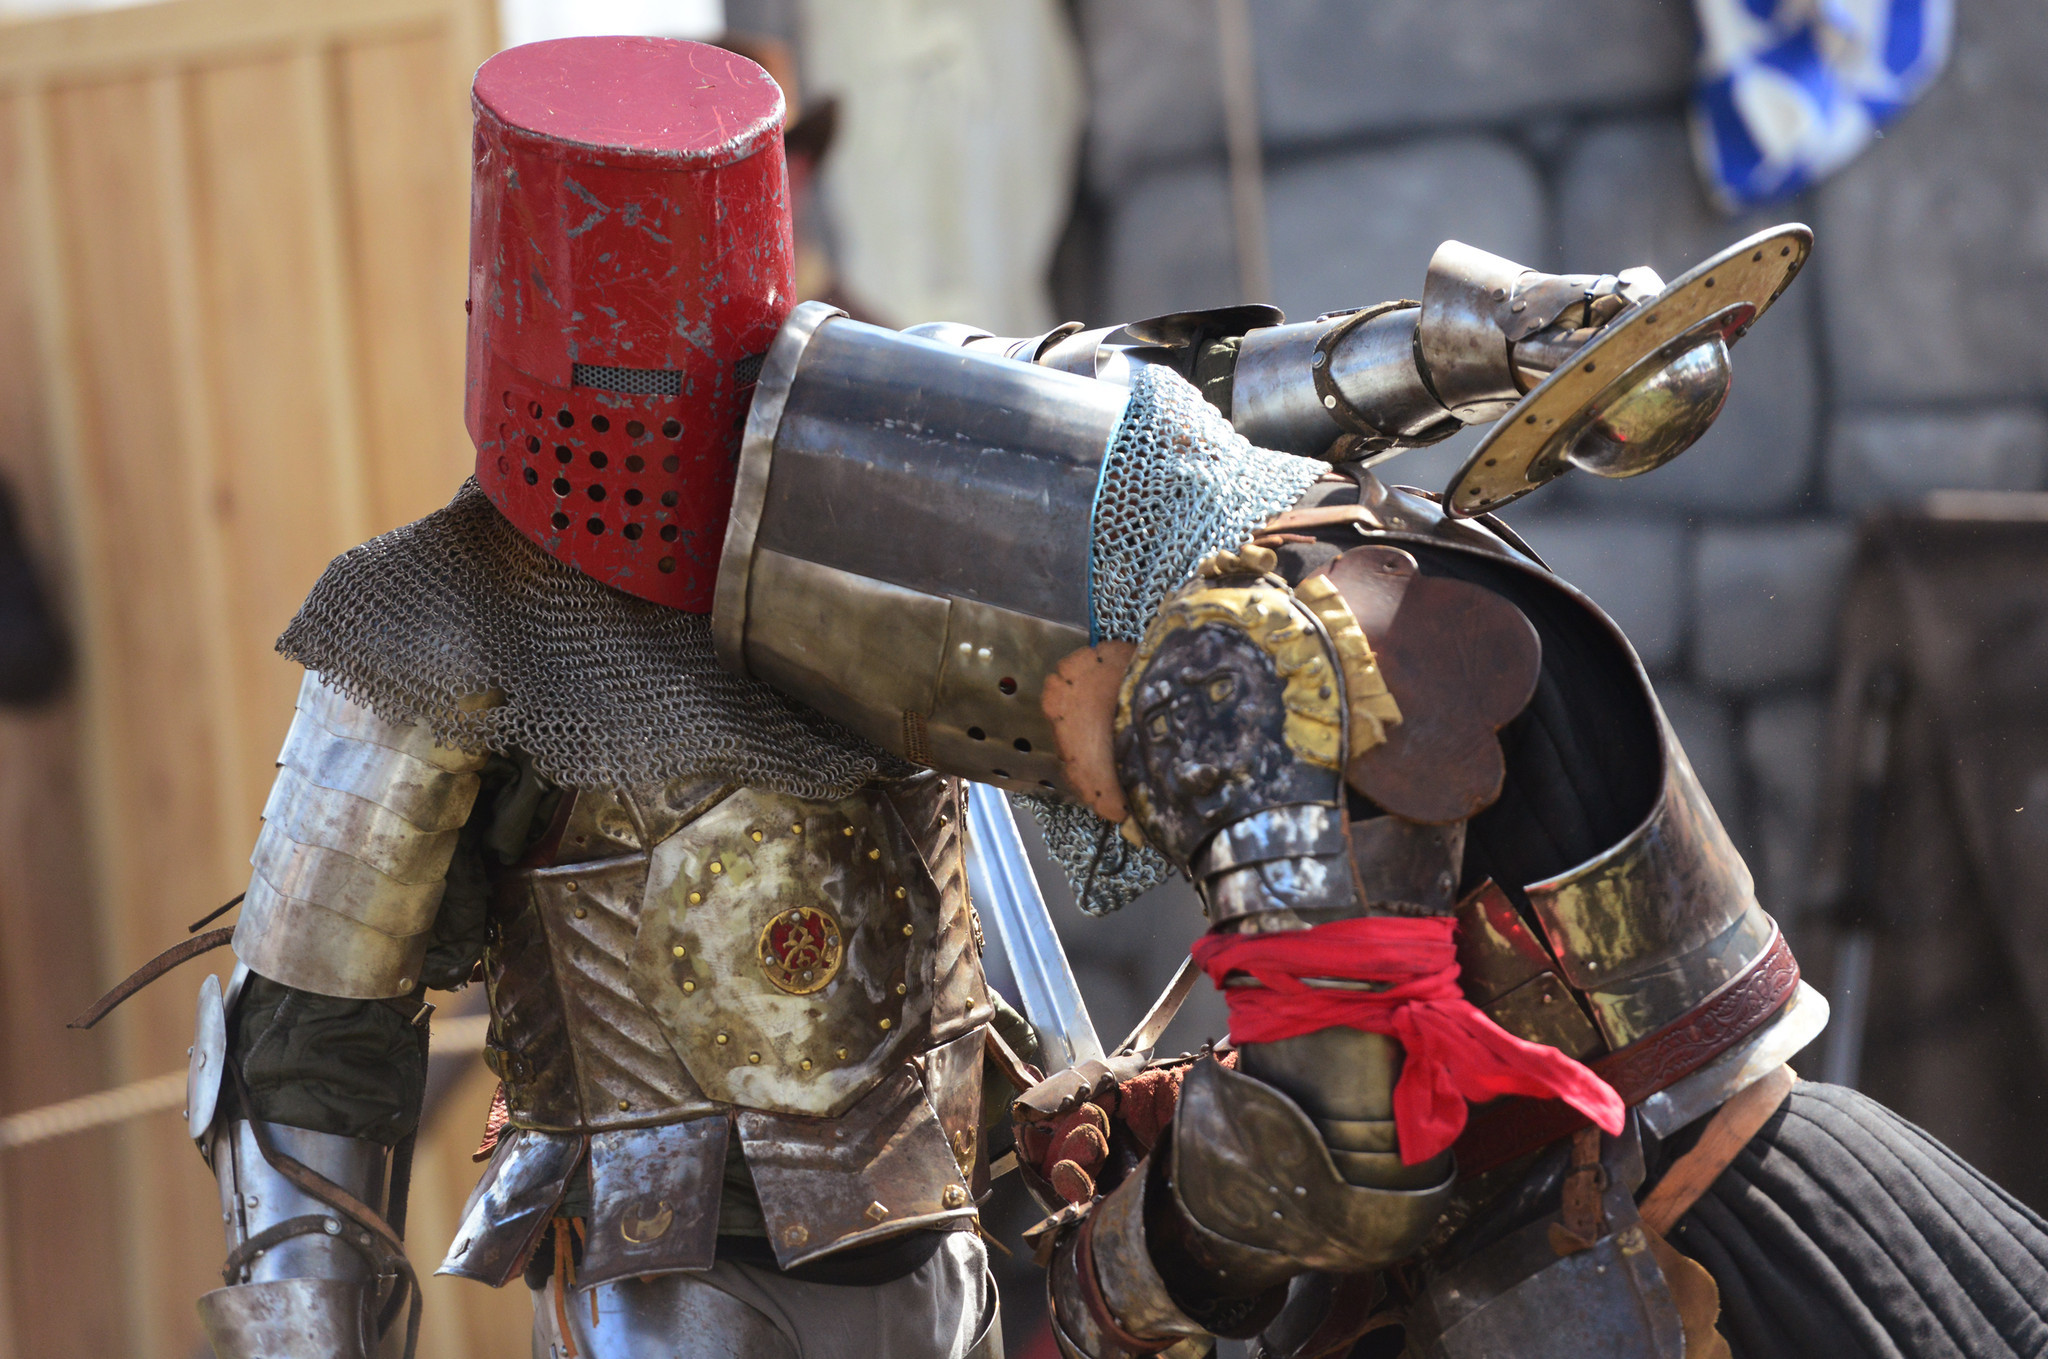 Renaissance Festival photos - History of Chivalry